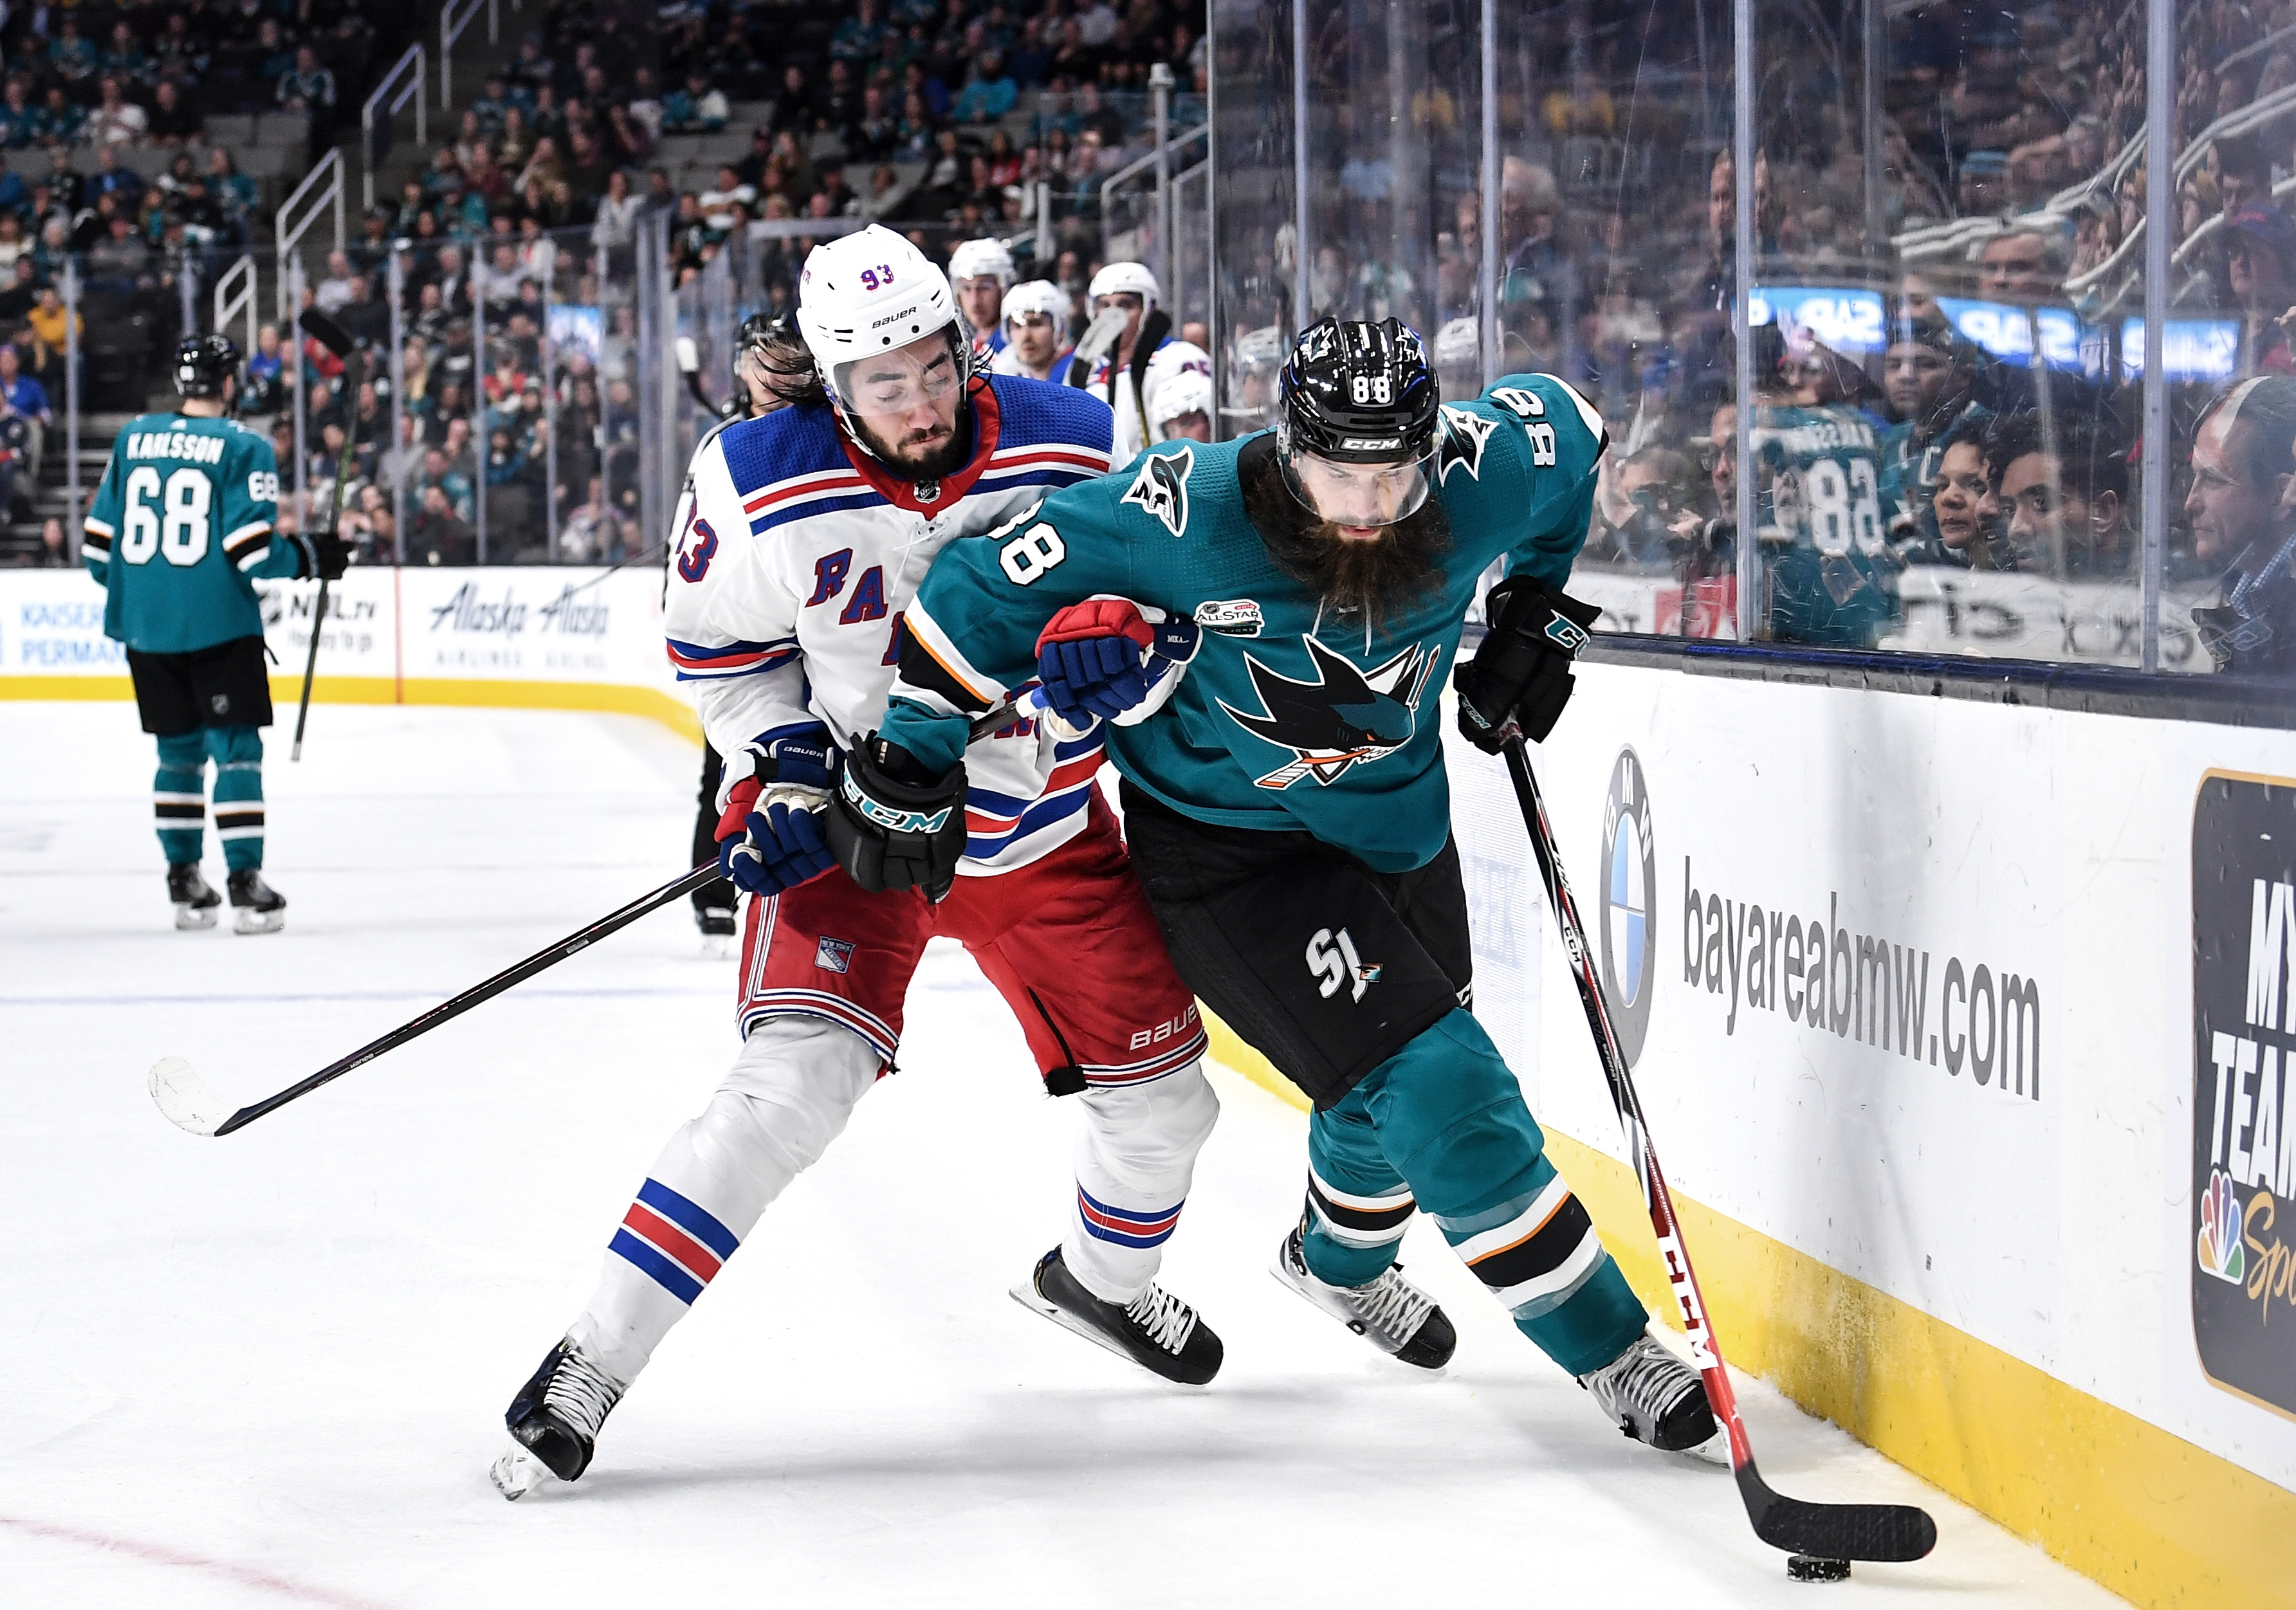 SAN JOSE, CA - OCTOBER 30: (R-L) Brent Burns #88 of the San Jose Sharks fights for the puck against Mika Zibanejad #93 the New York Rangers at SAP Center on October 30, 2018 in San Jose, California